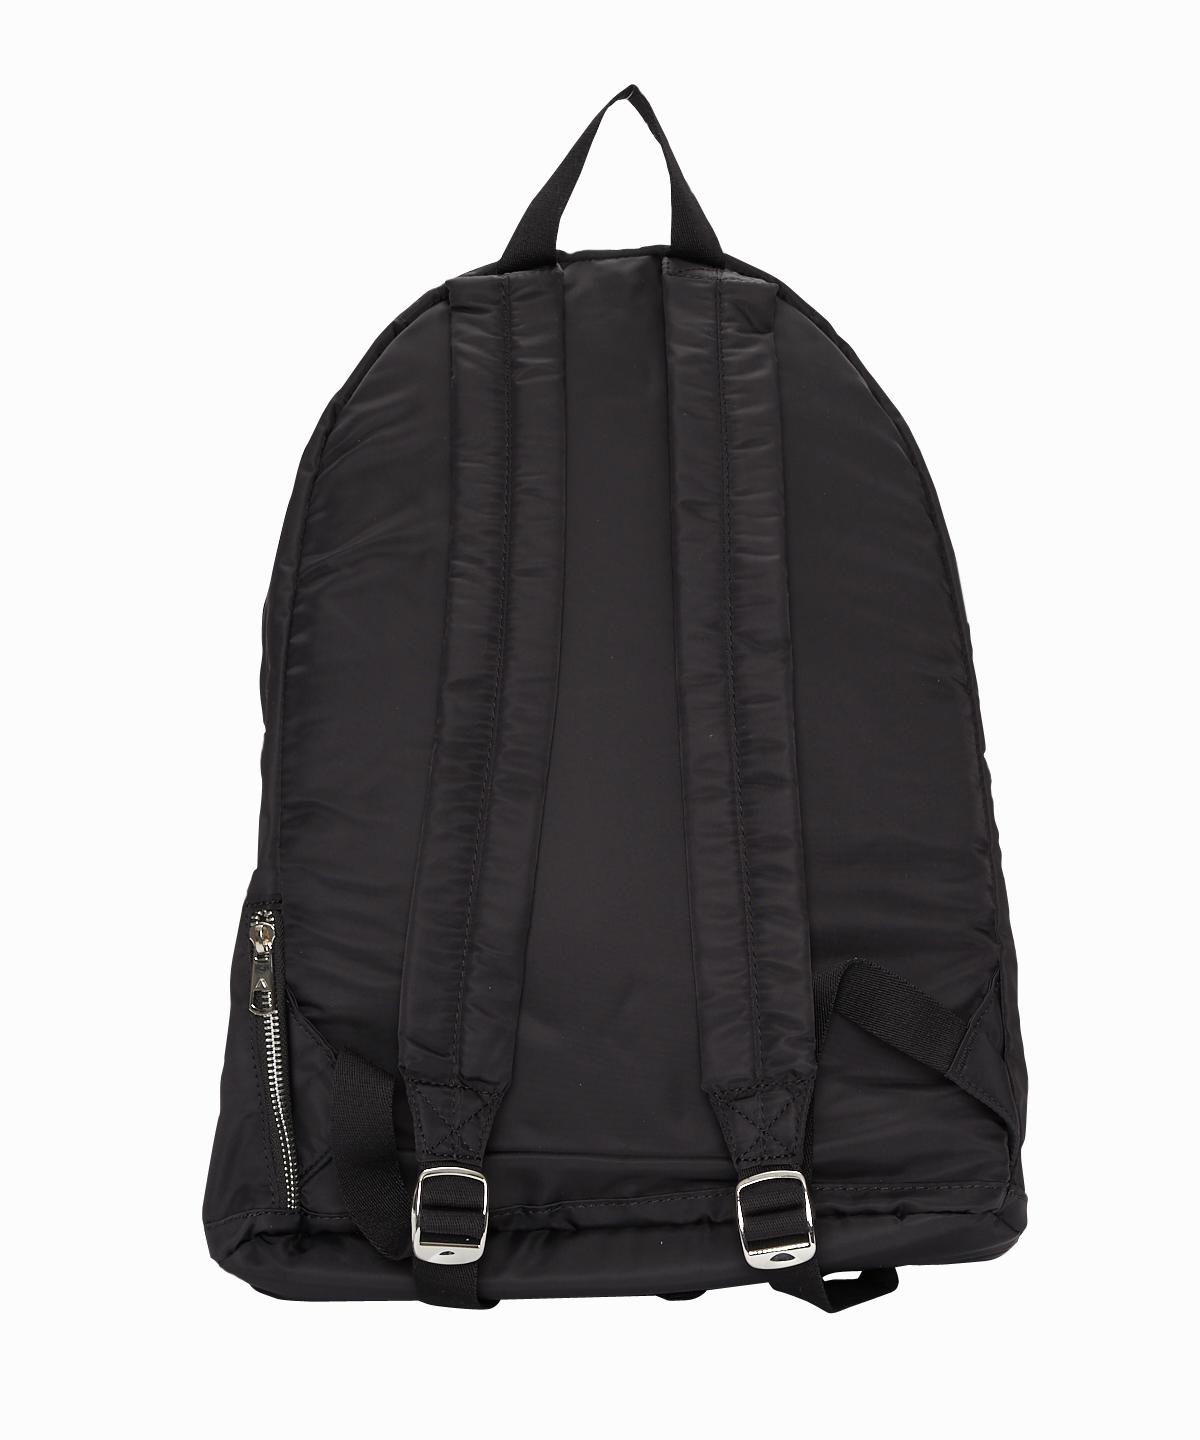 Lormier Heights Backpack